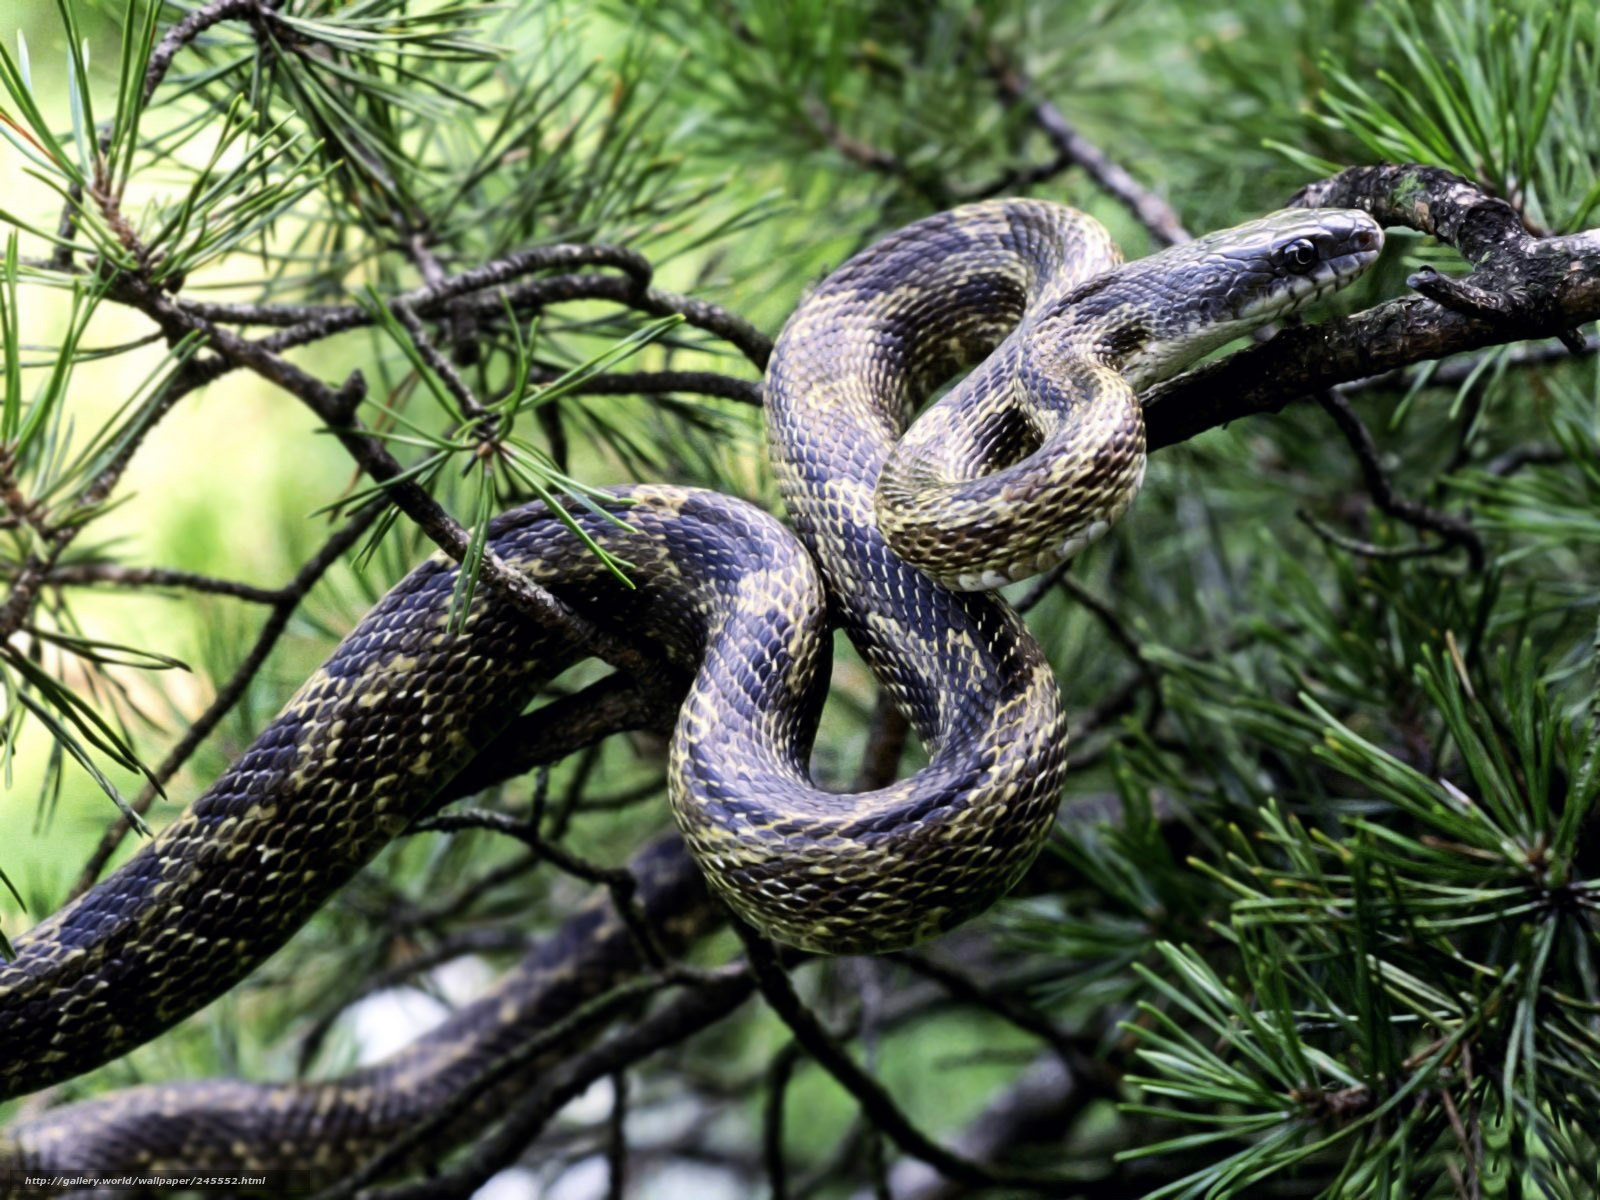 Download wallpaper snake,  tree,  leaves,  poison free desktop wallpaper in the resolution 1600x1200 — picture №245552